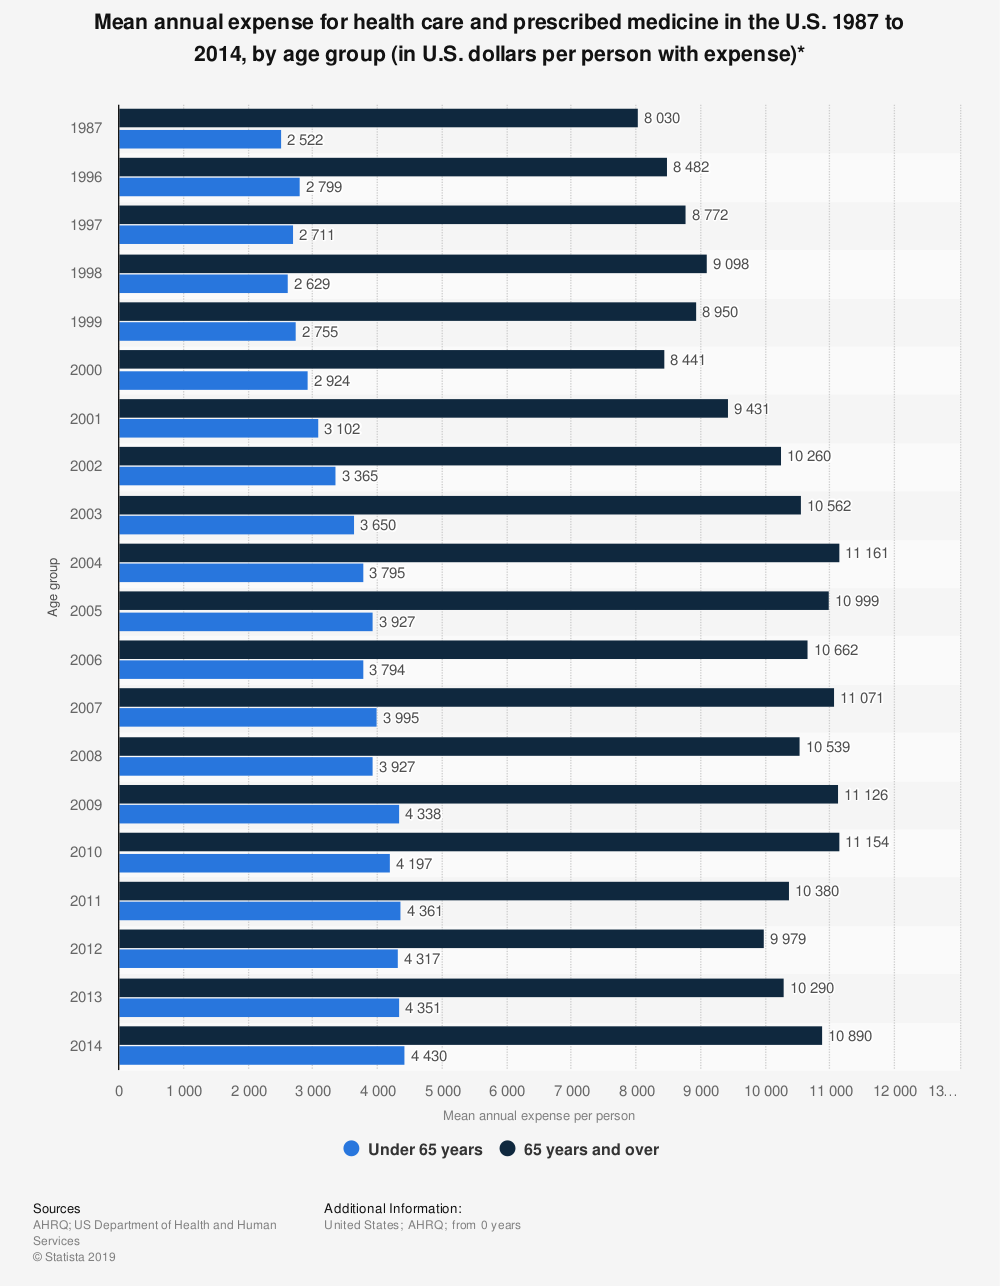 Statistic: Mean annual expense for health care and prescribed medicine in the U.S. 1987 to 2014, by age group (in U.S. dollars per person with expense)* | Statista